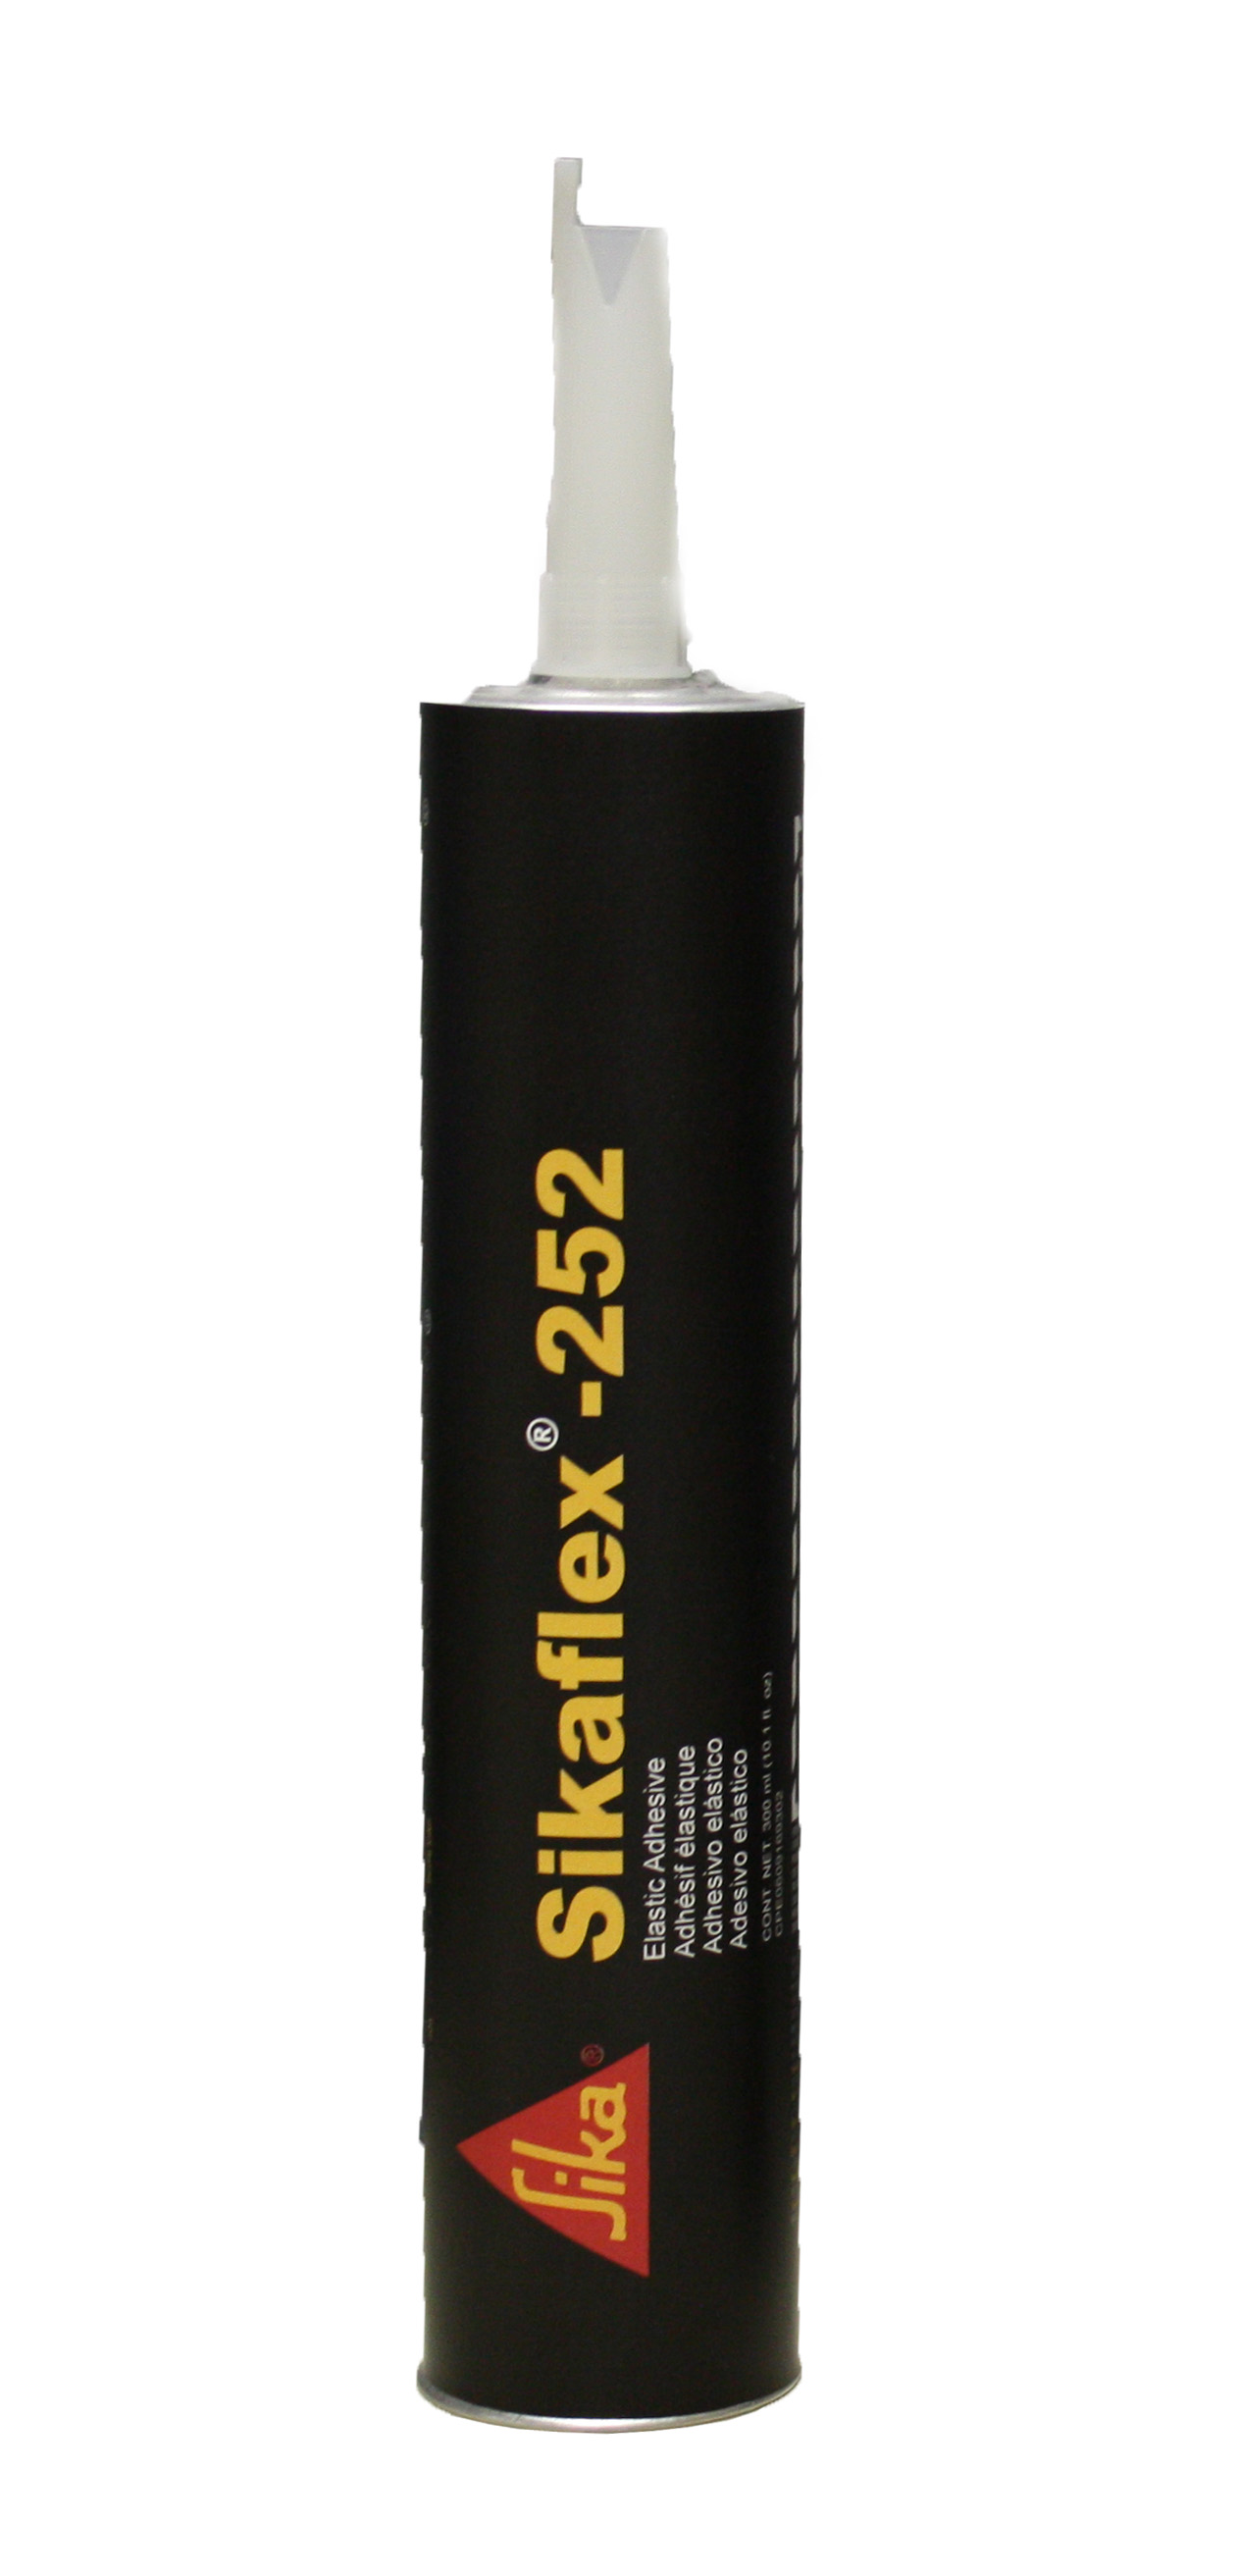 017-90916 AP Products Adhesive Sealant Used To Bond And Seal Wide